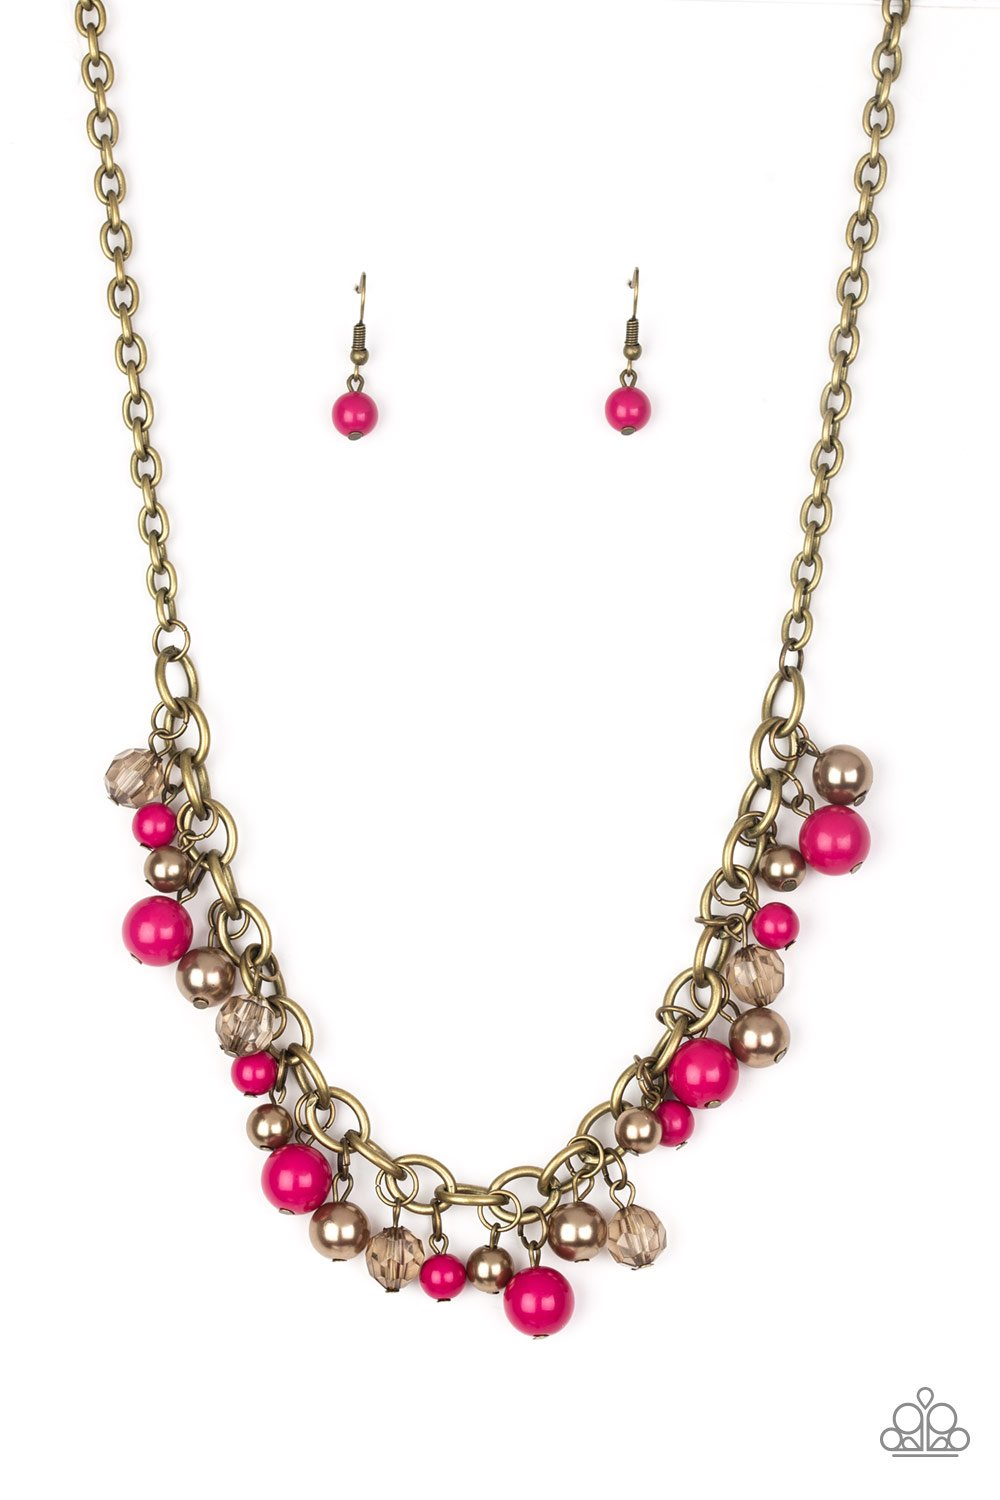 Paparazzi Accessories ~ The GRIT Crowd - Pink